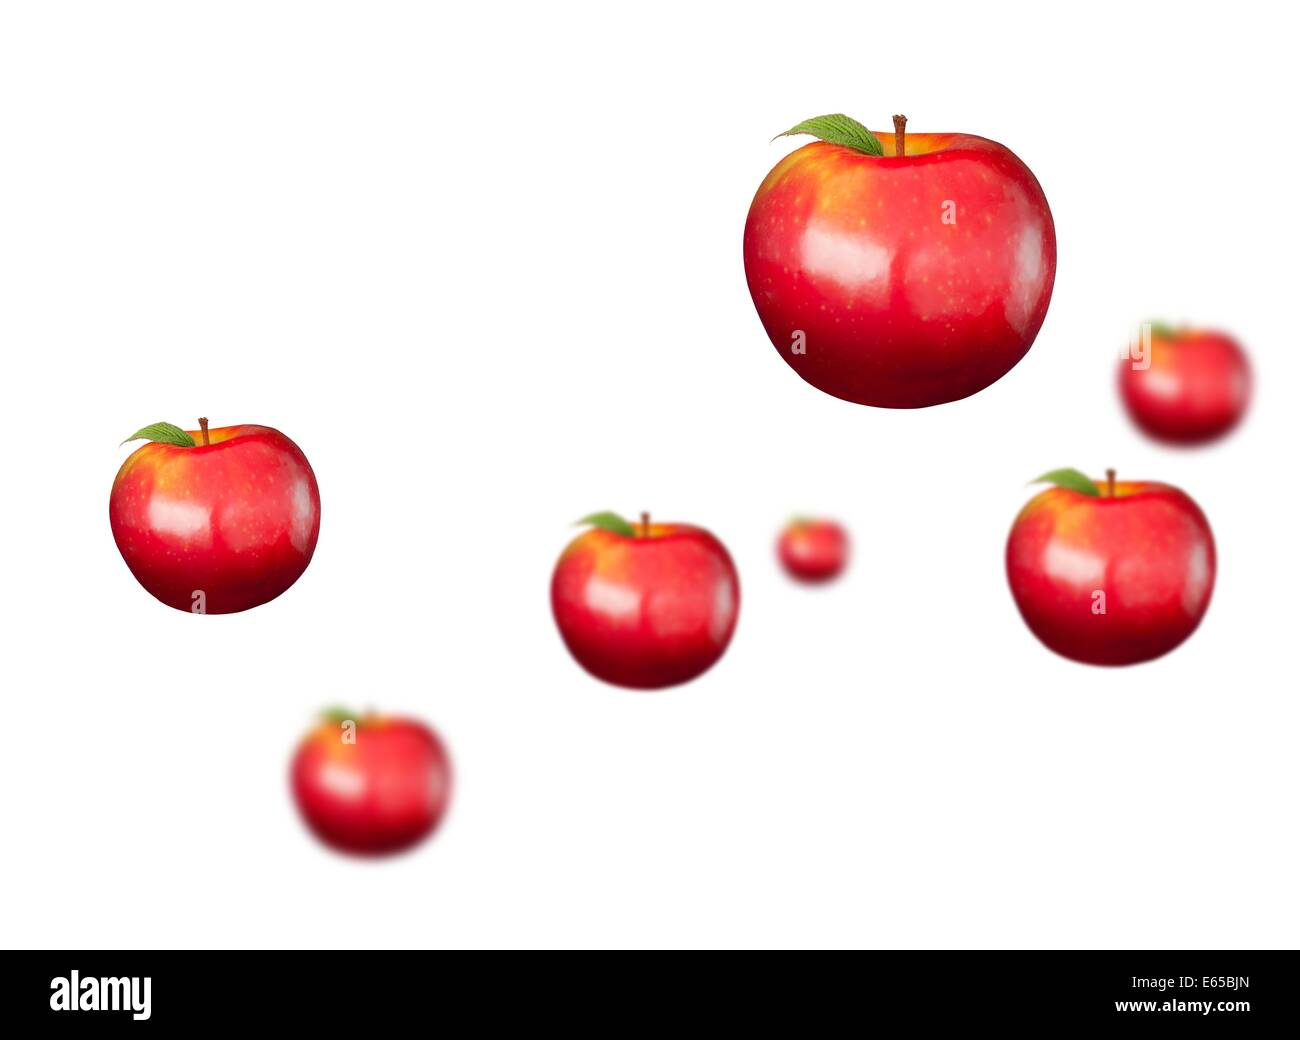 Digitally generated shiny red apples - Stock Image